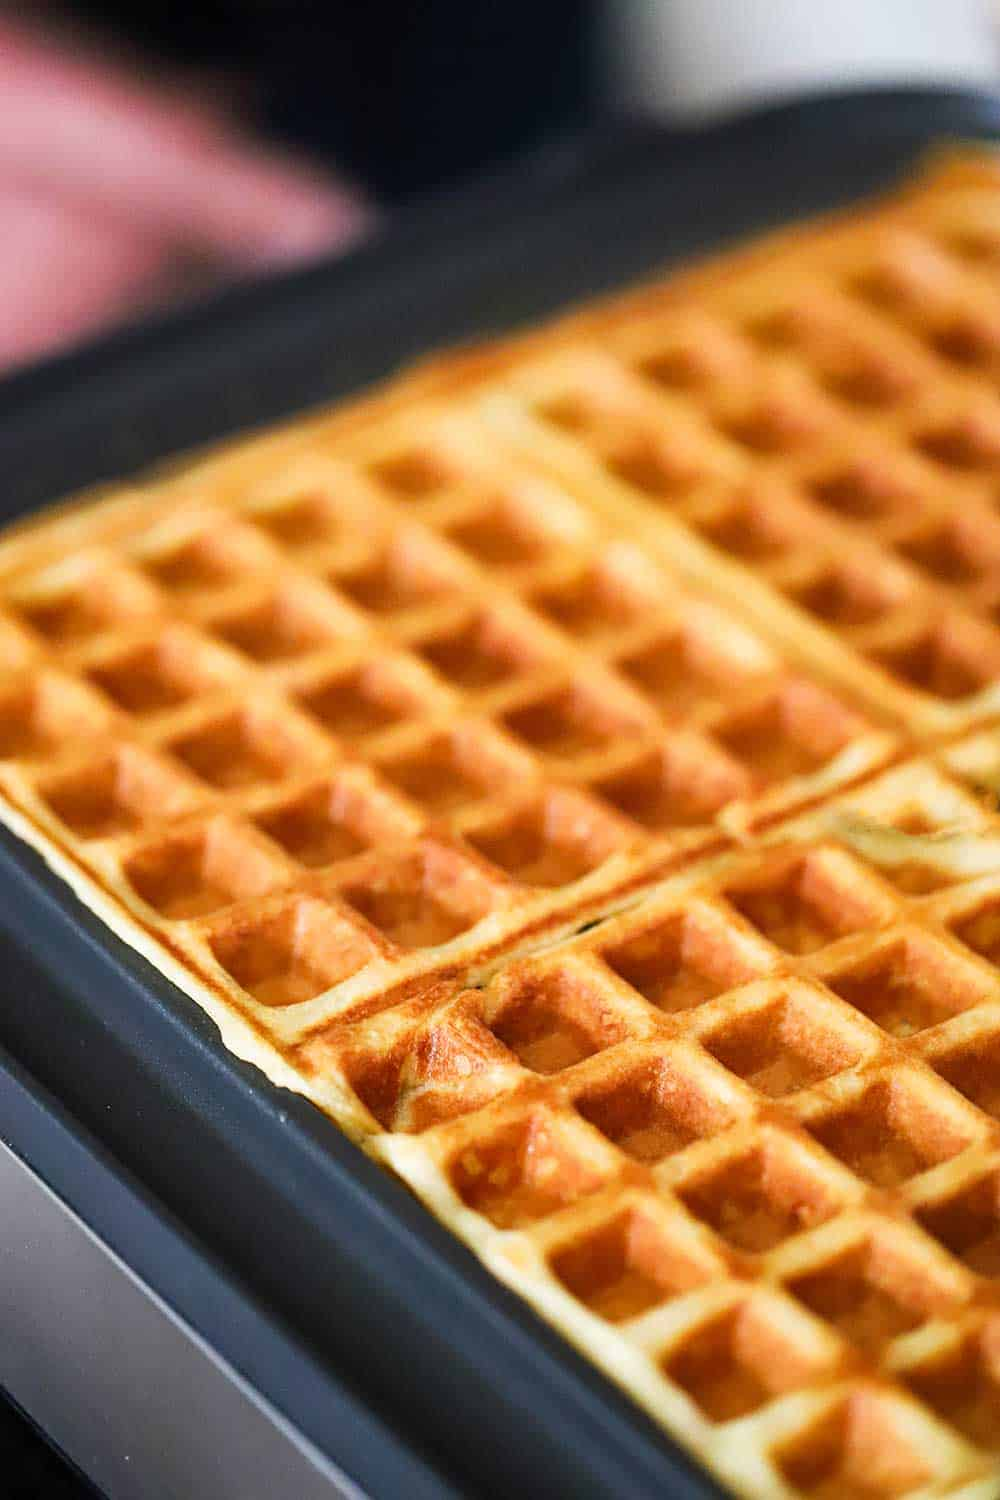 Fully cooked waffles in a square waffle maker with the lid up exposing the waffles.